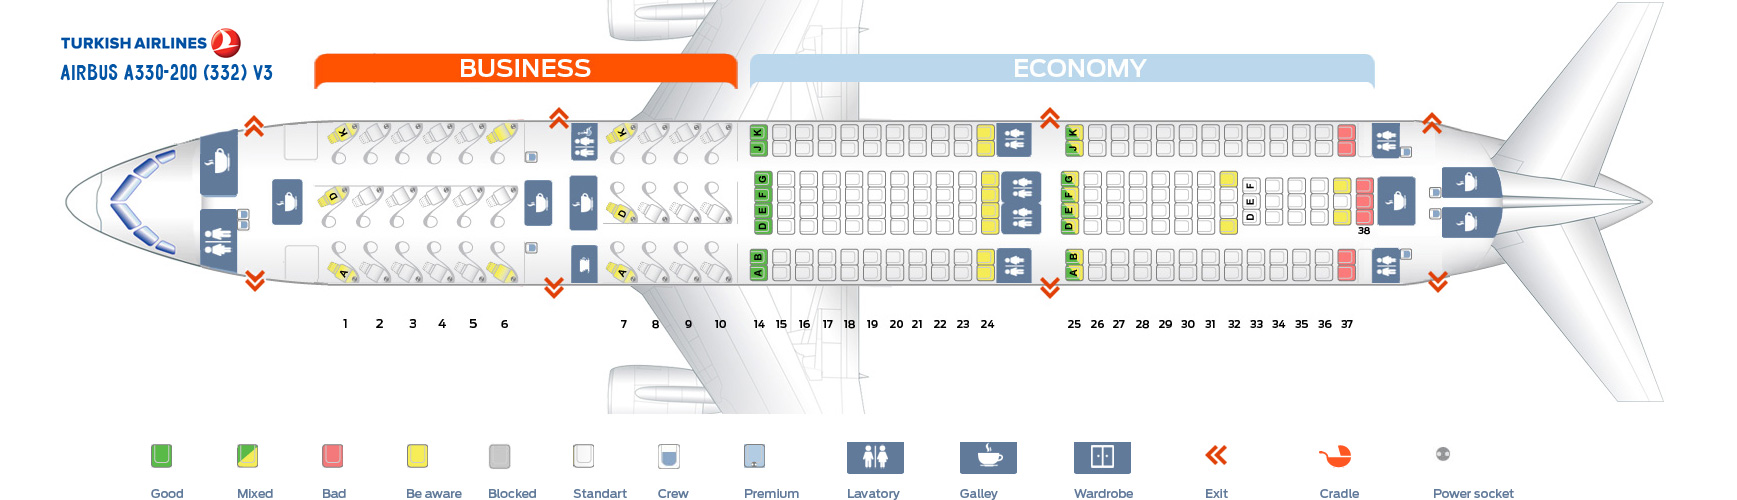 Airbus A330 200 Seating Plan Turkish Airlines Review